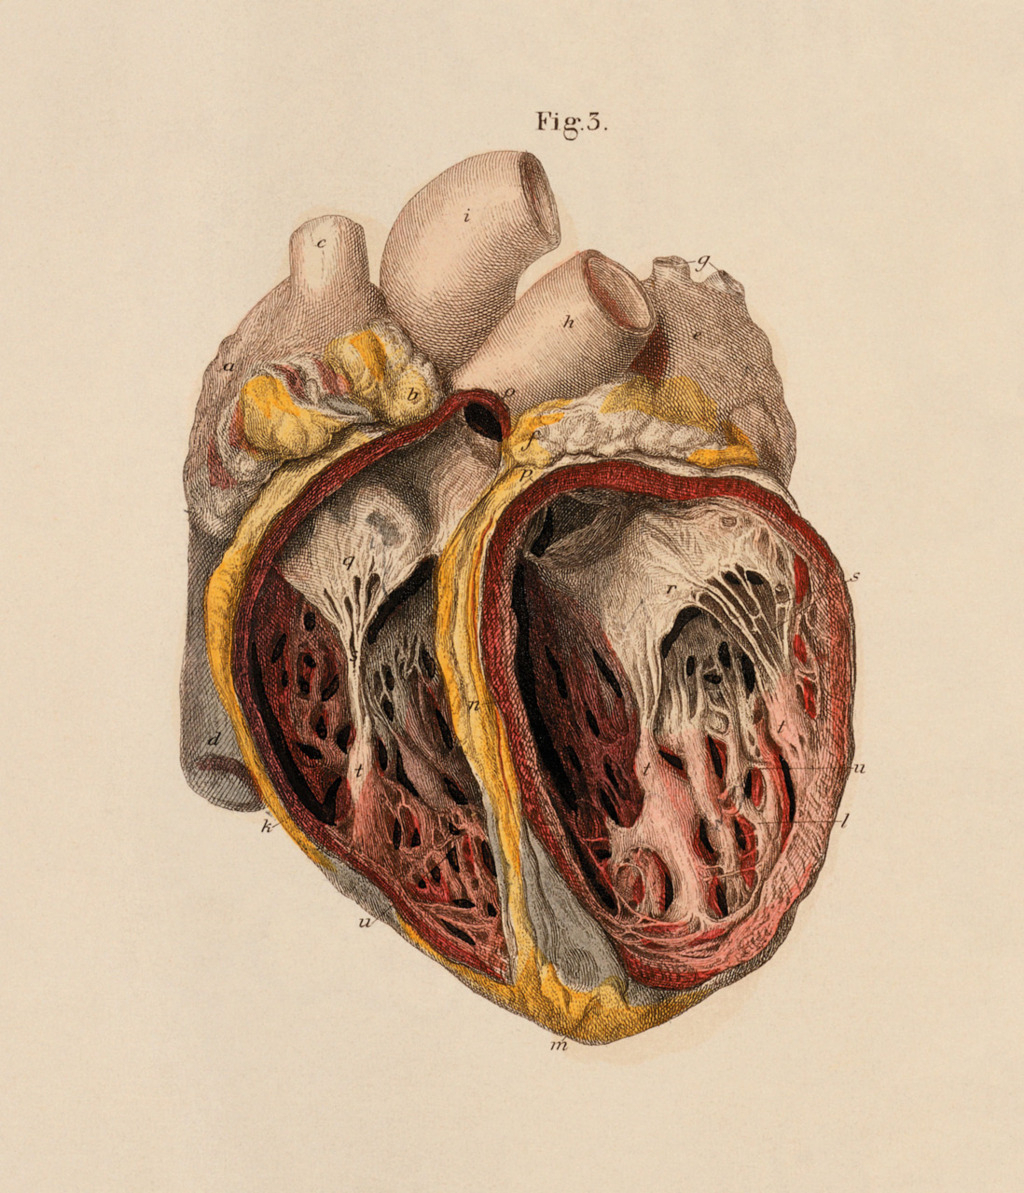 1024x1193 Anatomical Drawing Of A Heart Vintage Anatomical Heart Drawing